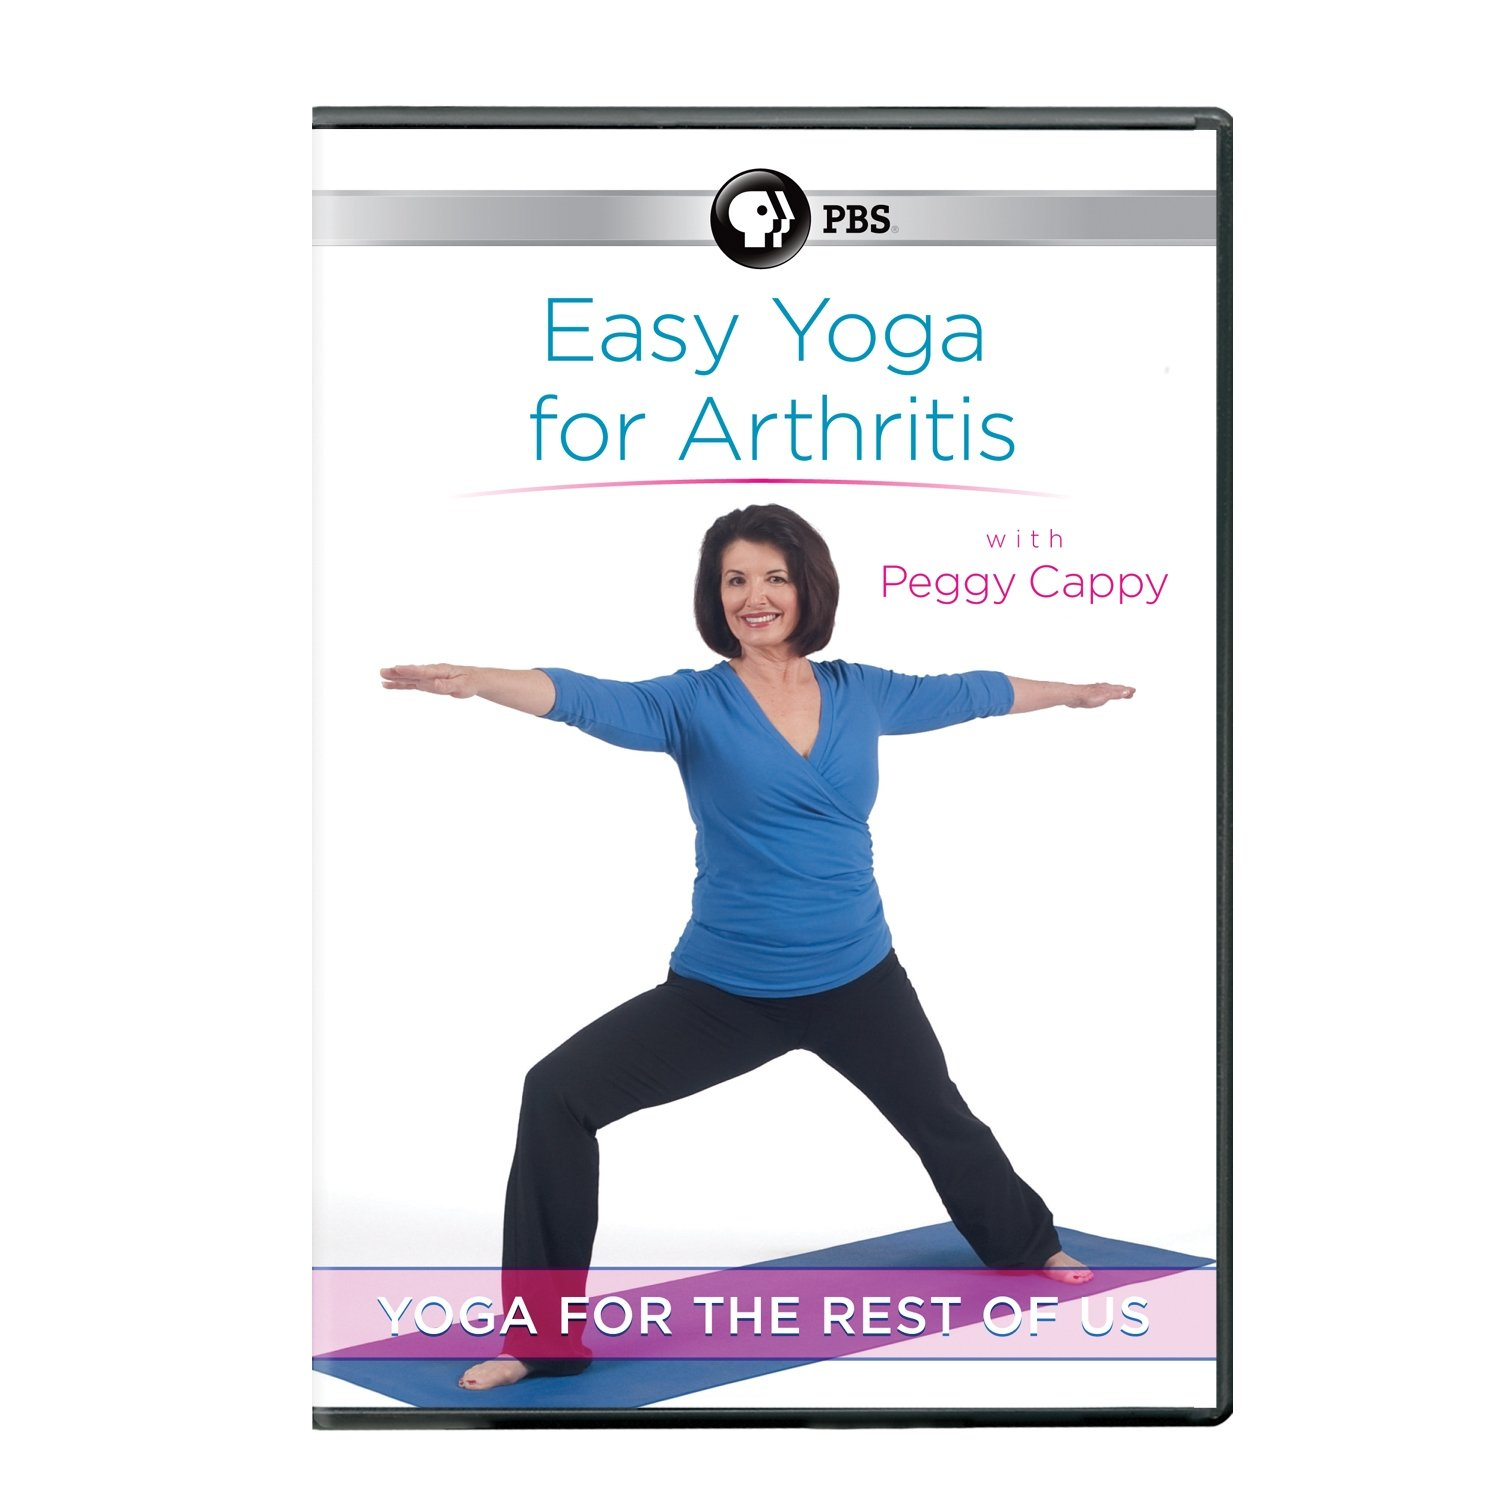 Yoga for the Rest of Us: Easy Yoga for Arthritis with Peggy Cappy Public Broadcasting Service 15062963 Fitness/Self-Help Movie